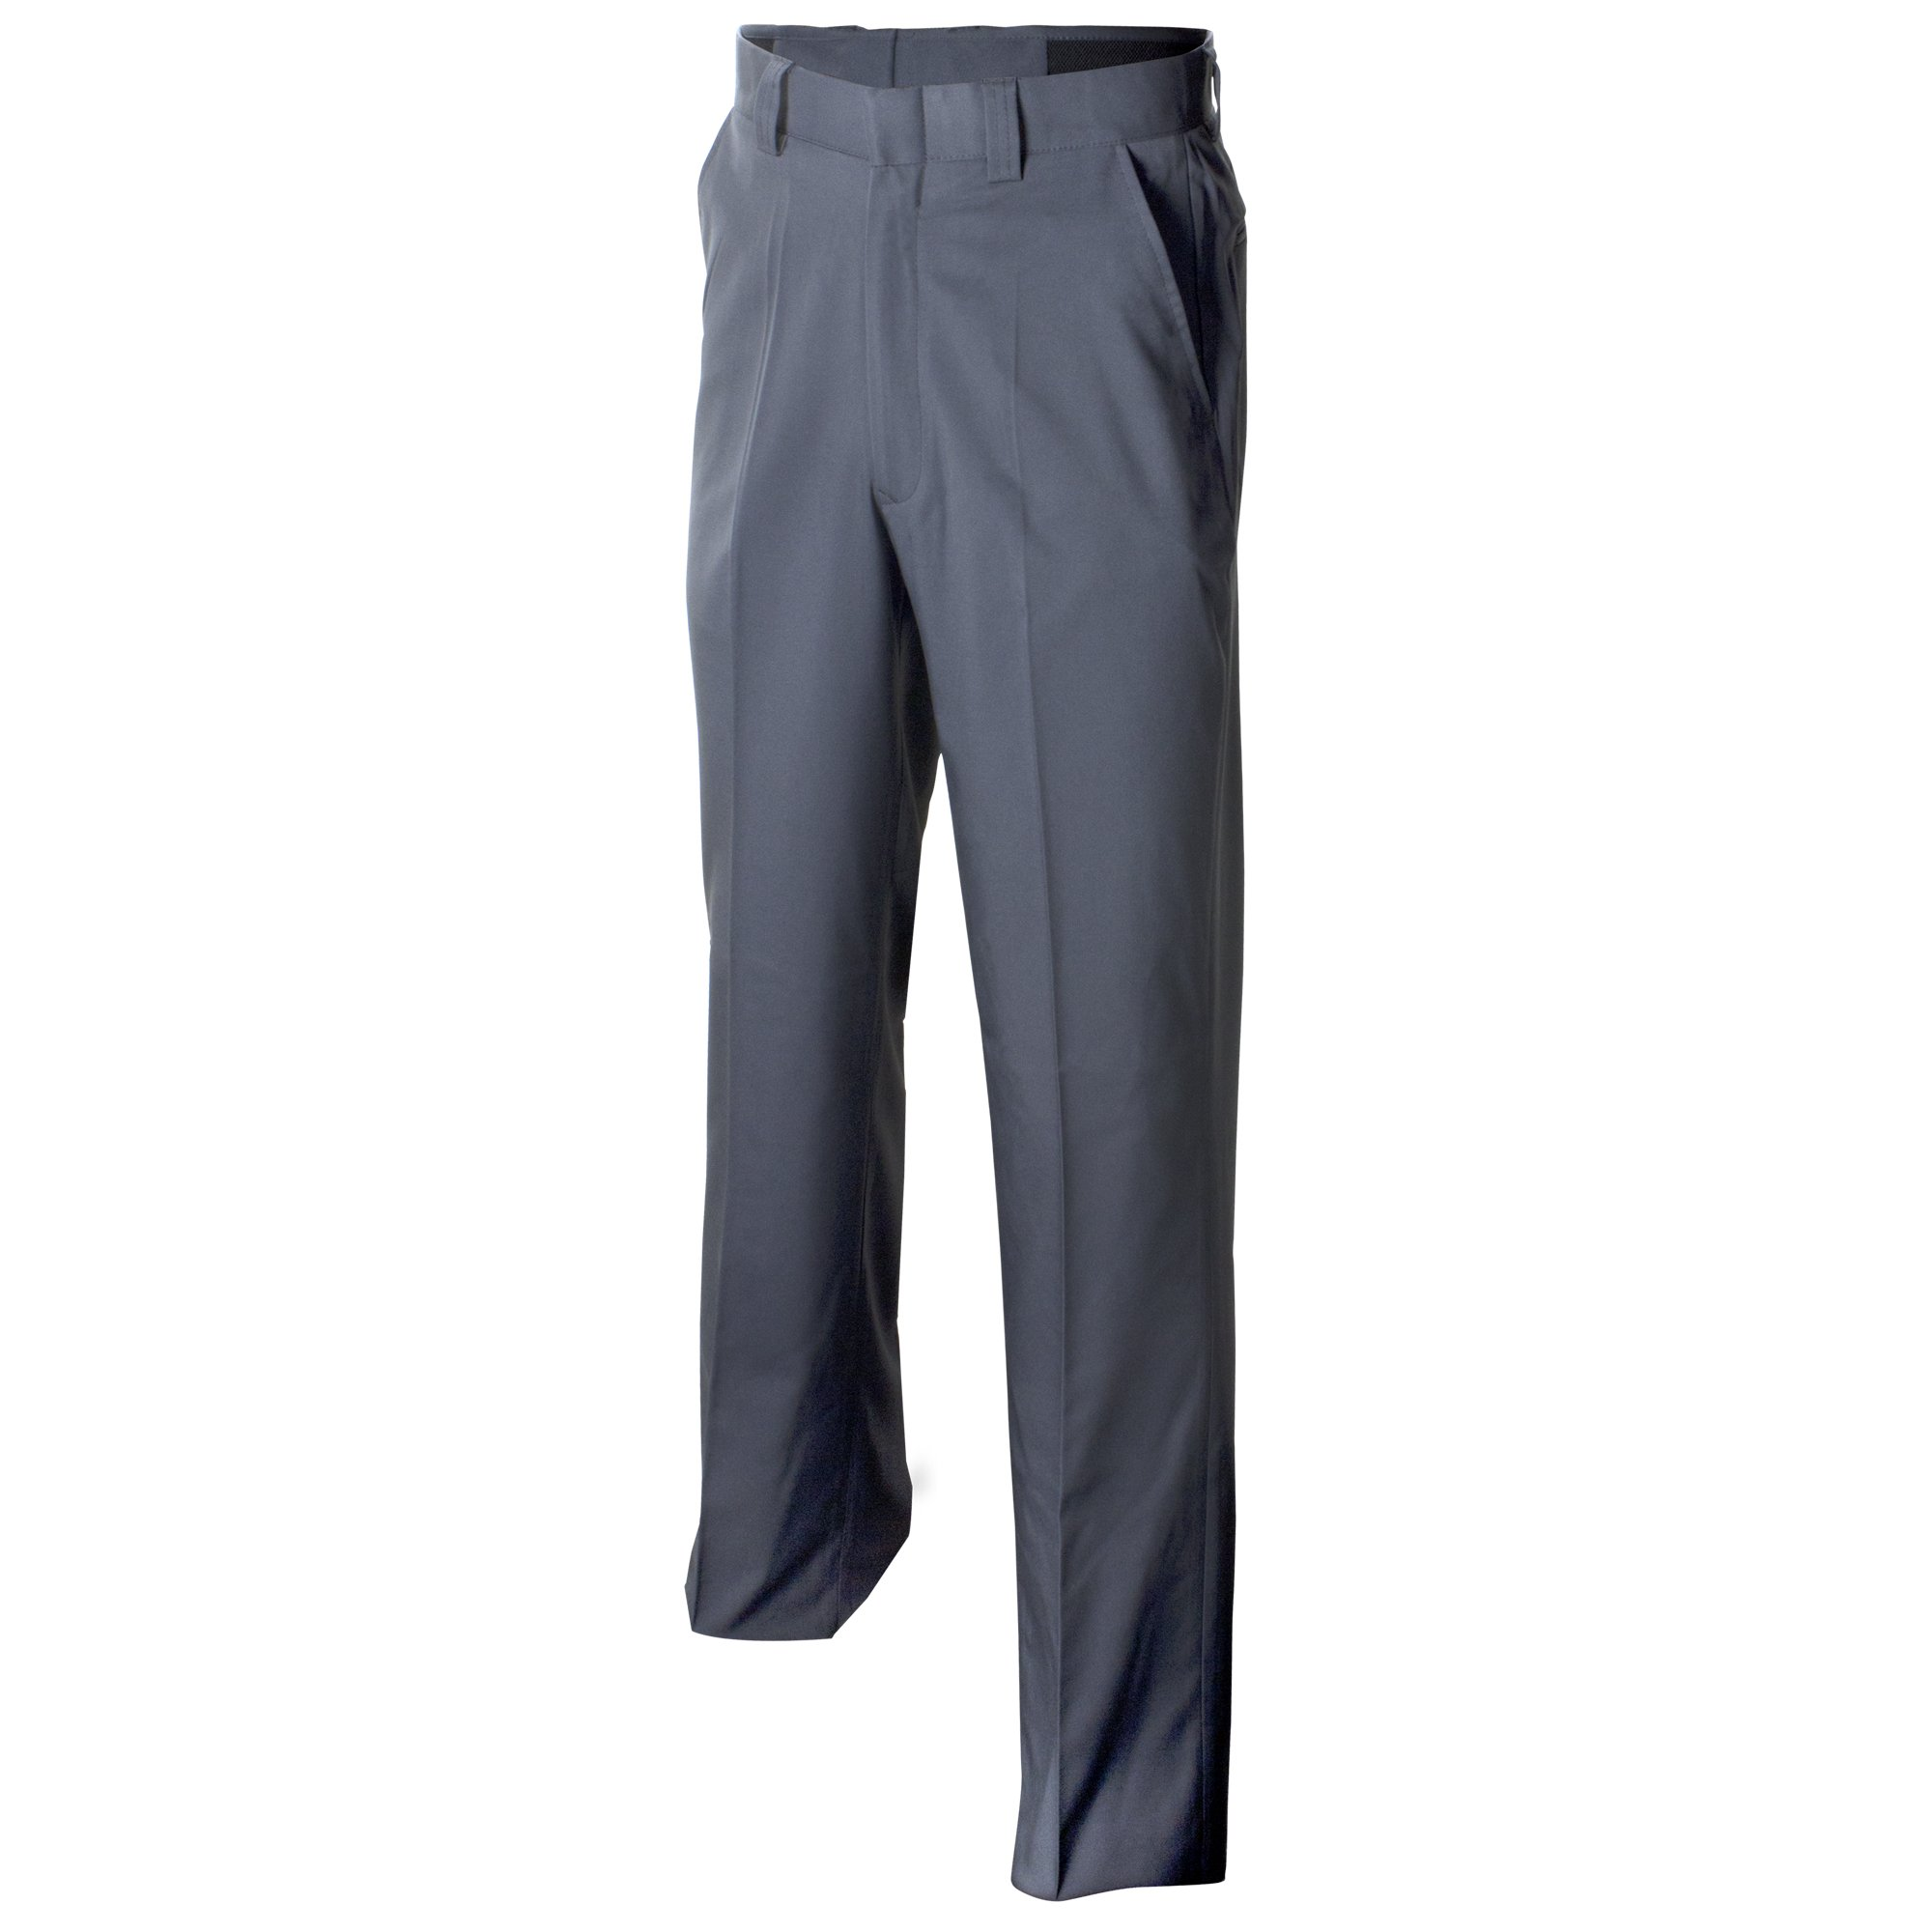 Adams USA ADMBB375-32-CG Umpire Combo Pleated Expandable Waist Uniform Pants Charcoal Grey Size 32